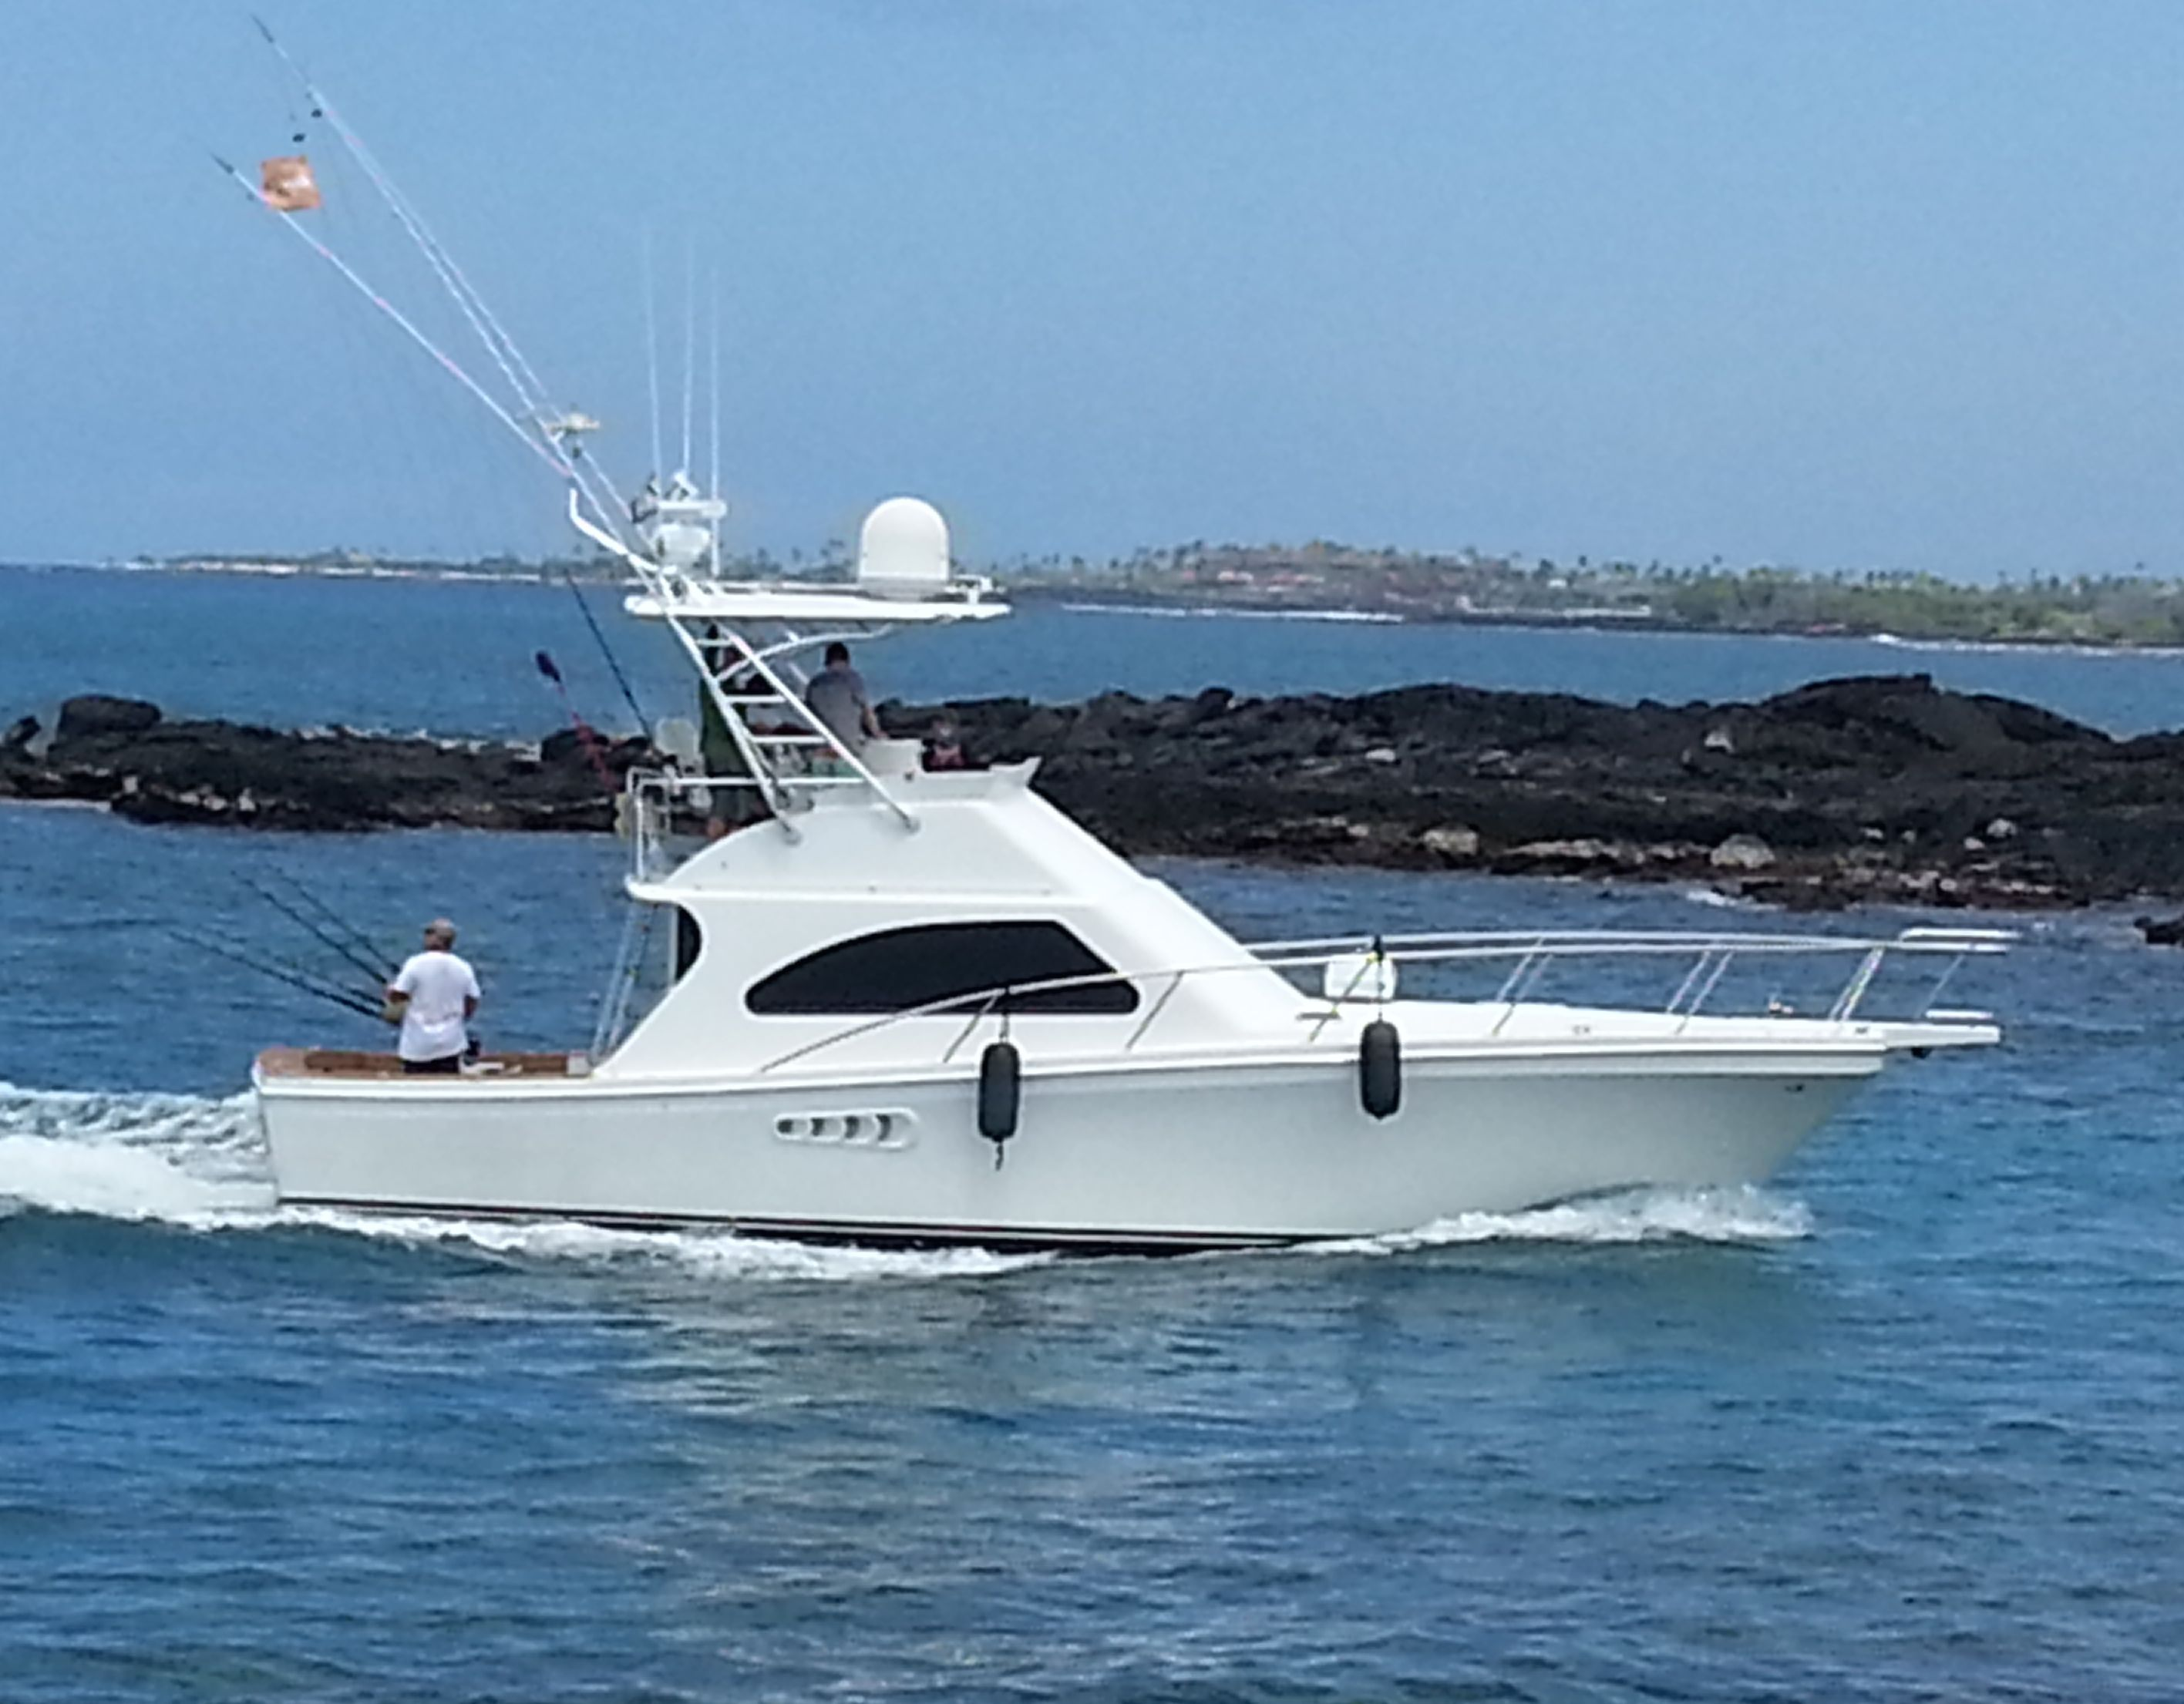 Kona charter sportfishing kailua kona hawaii fishing for Kona sport fishing